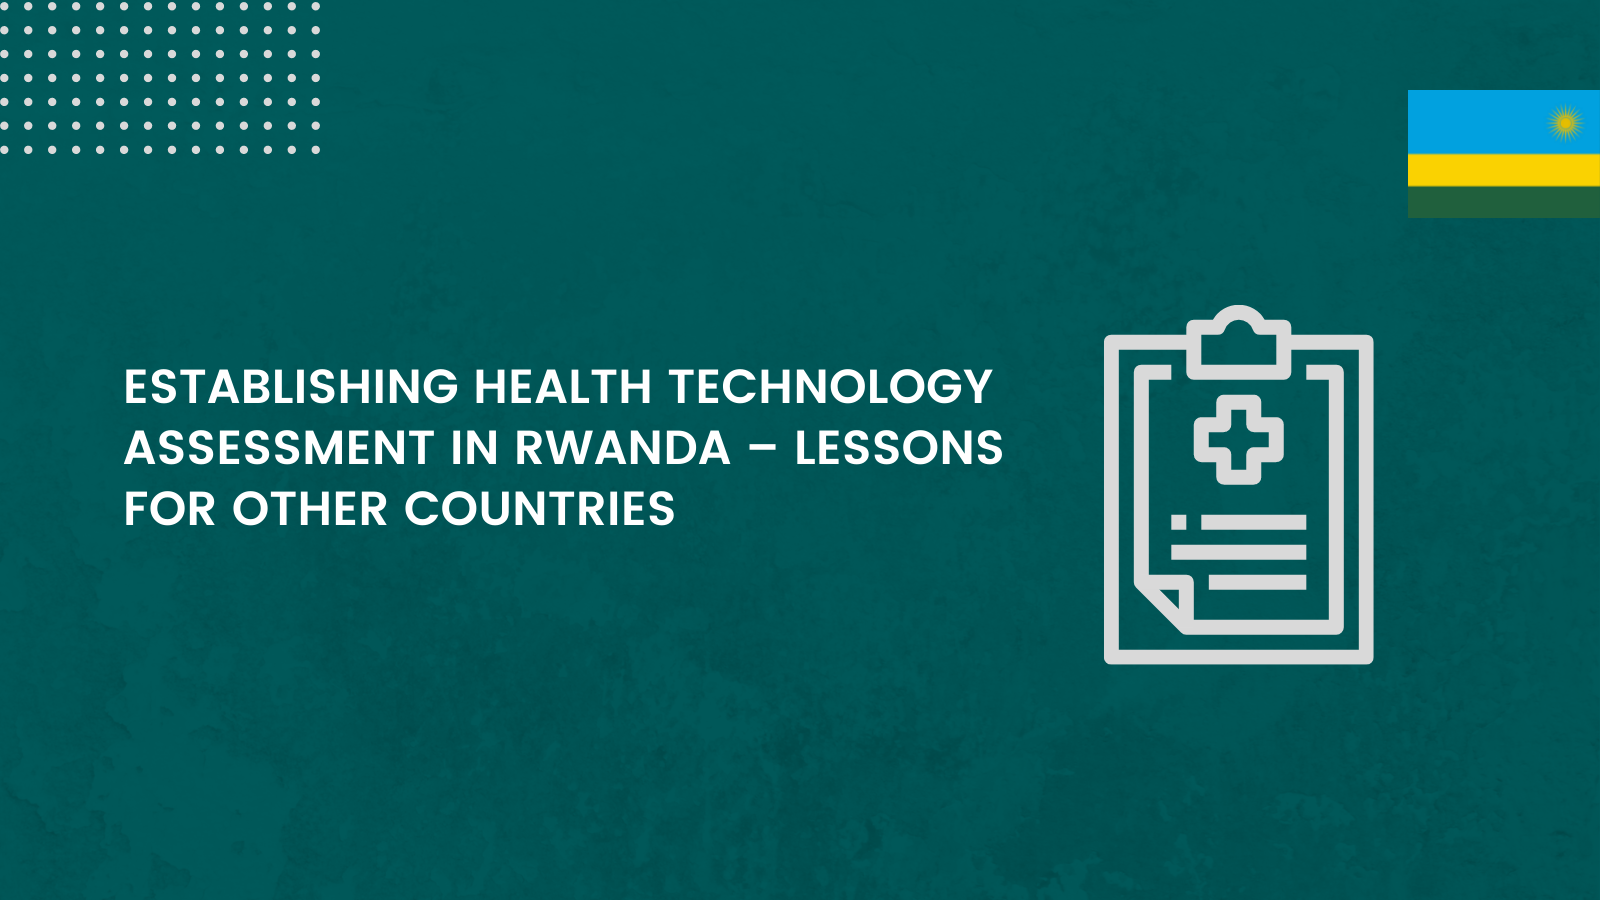 Establishing Health Technology Assessment In Rwanda – Lessons For Other Countries